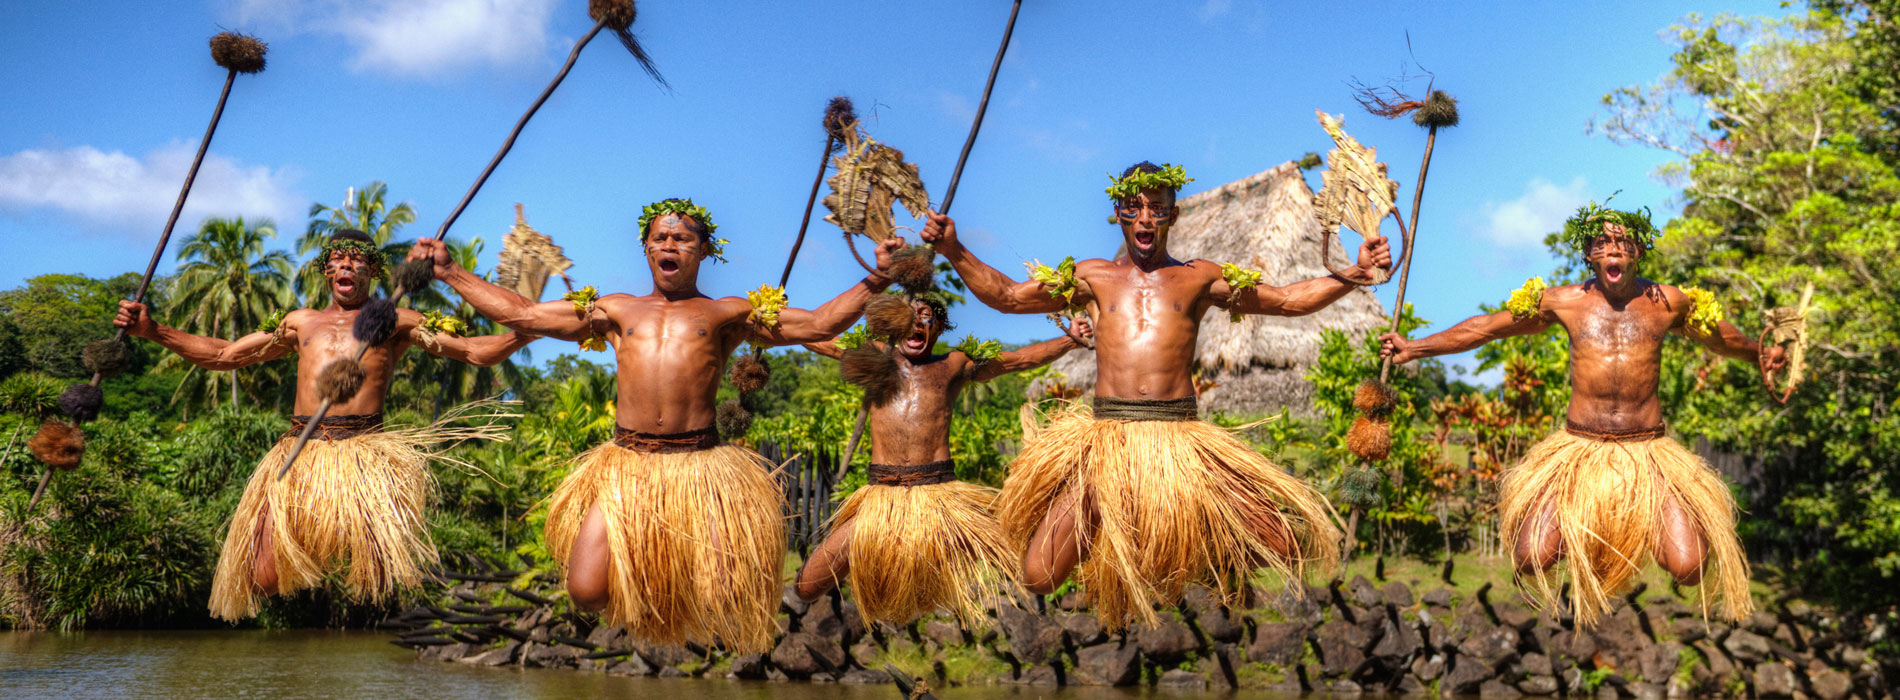 fiji cultural traditions